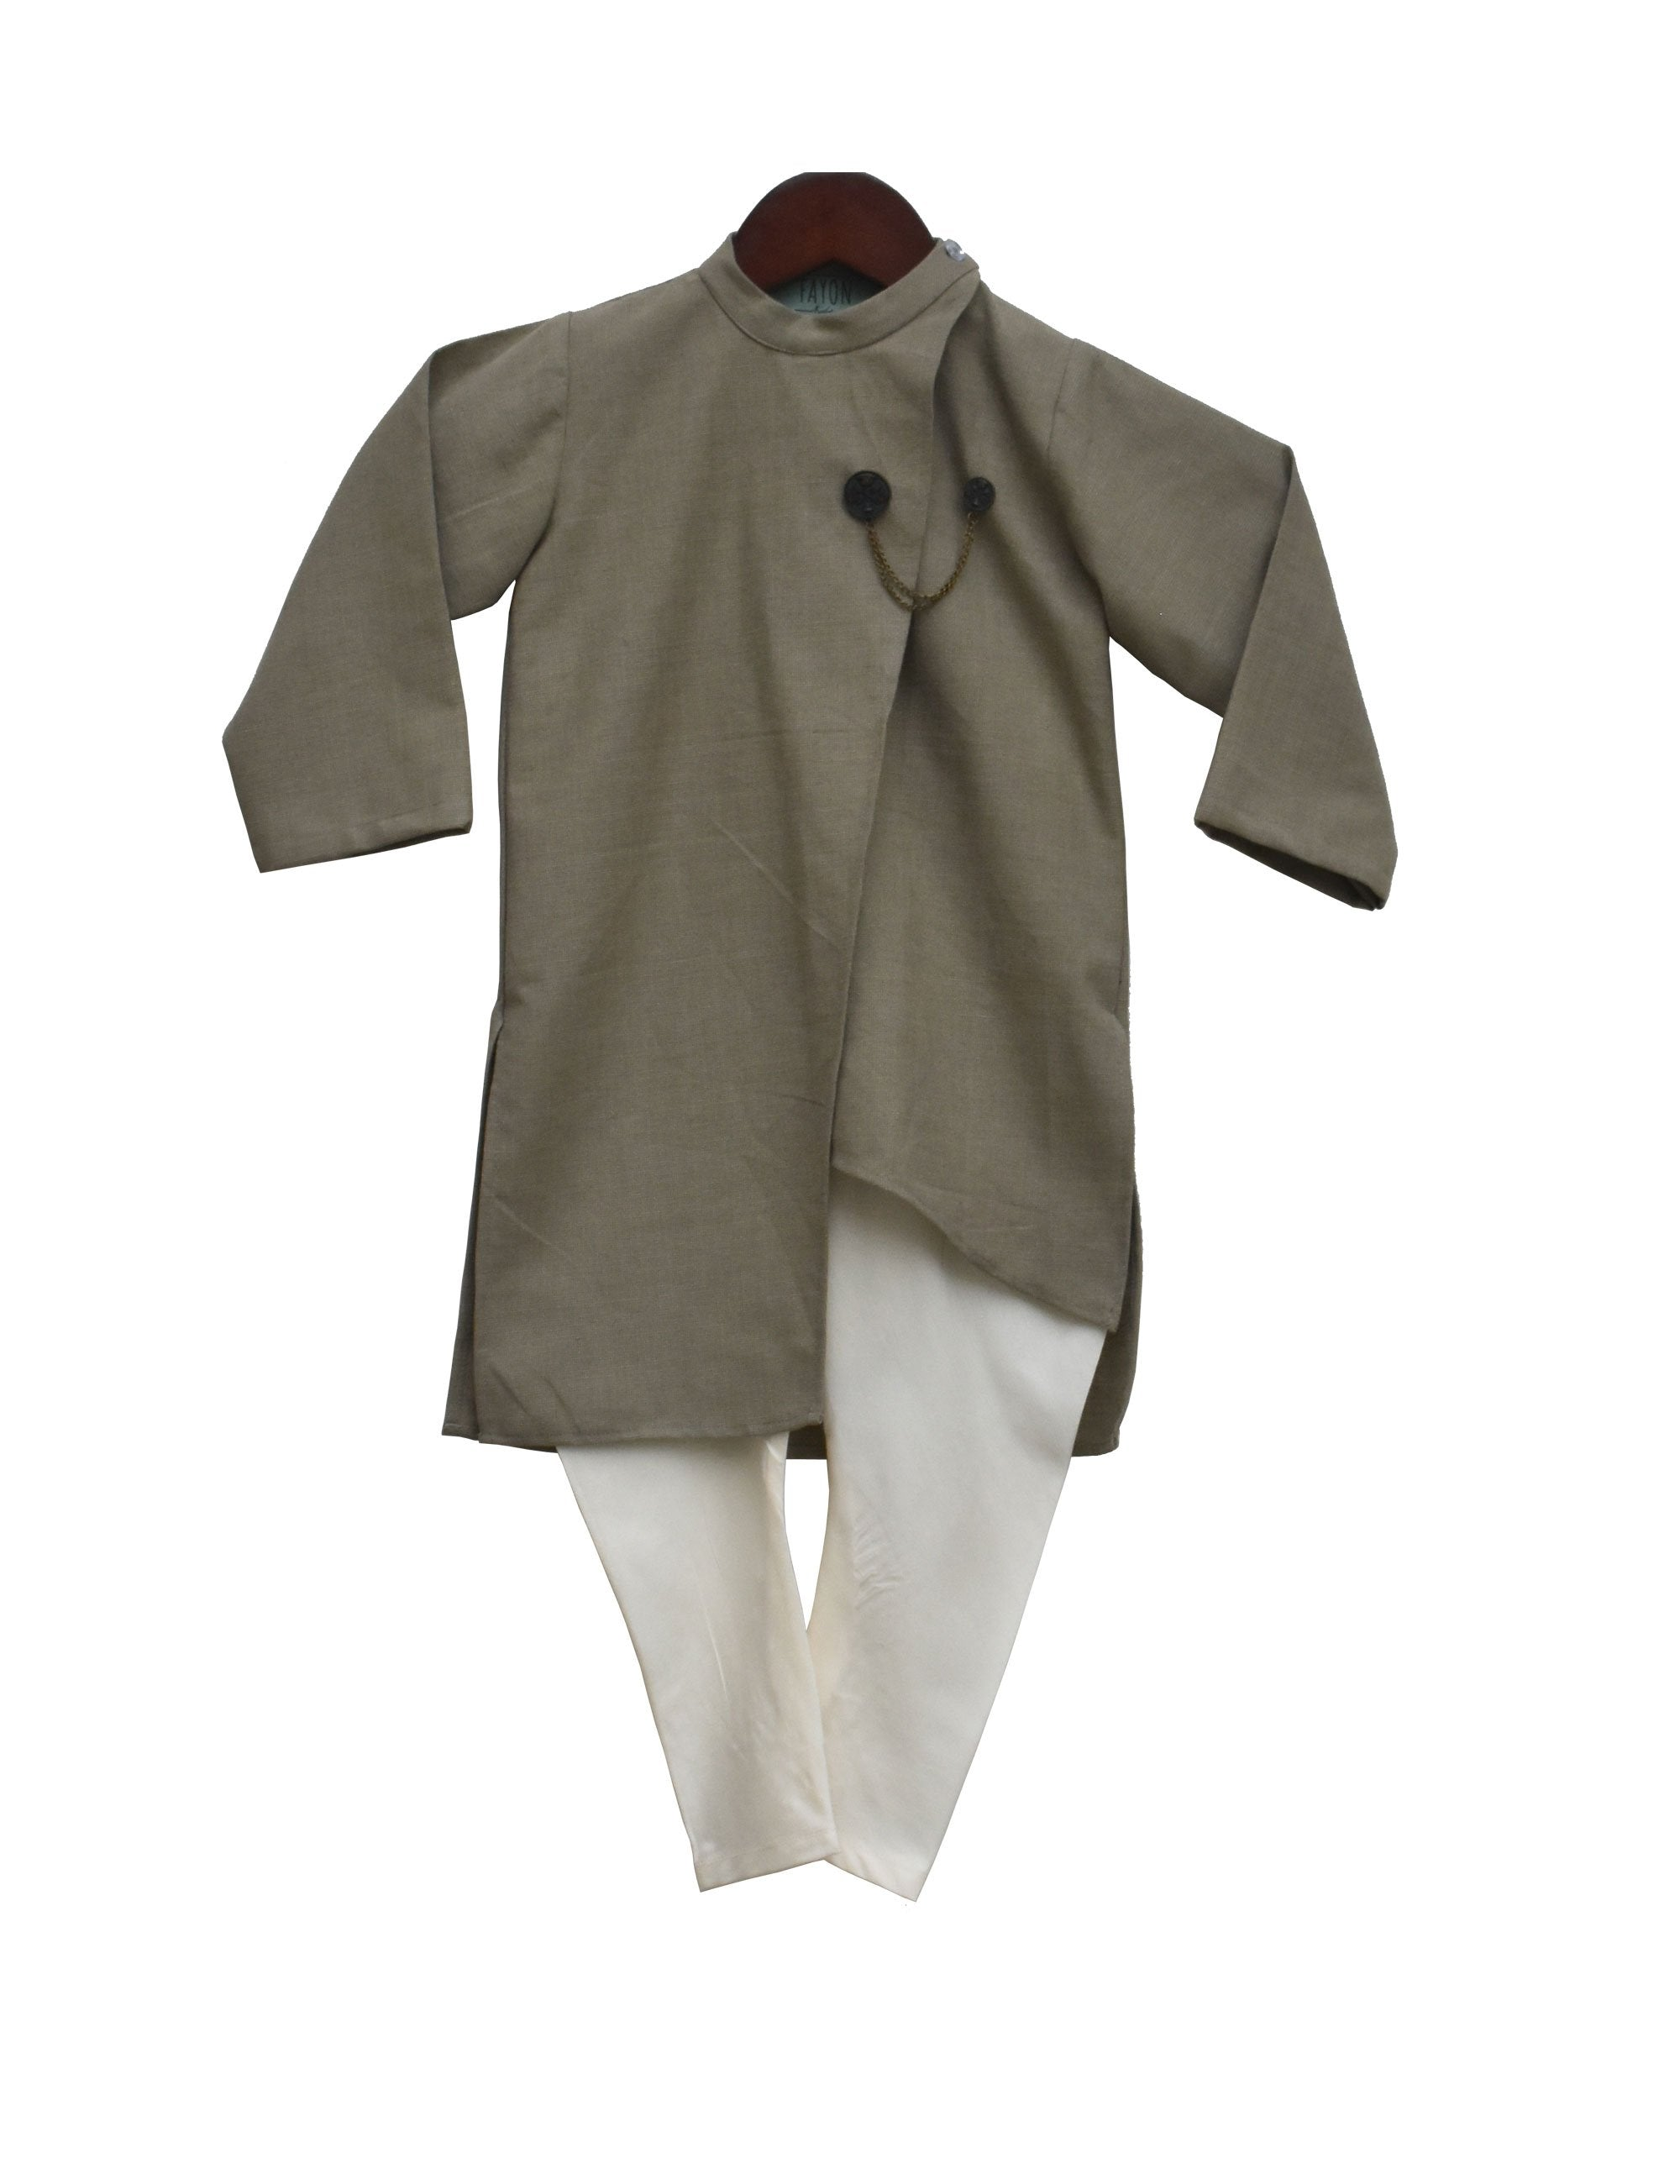 Linen Asymmetric Kurta with Churidaar in Grey and White Colour for Boys